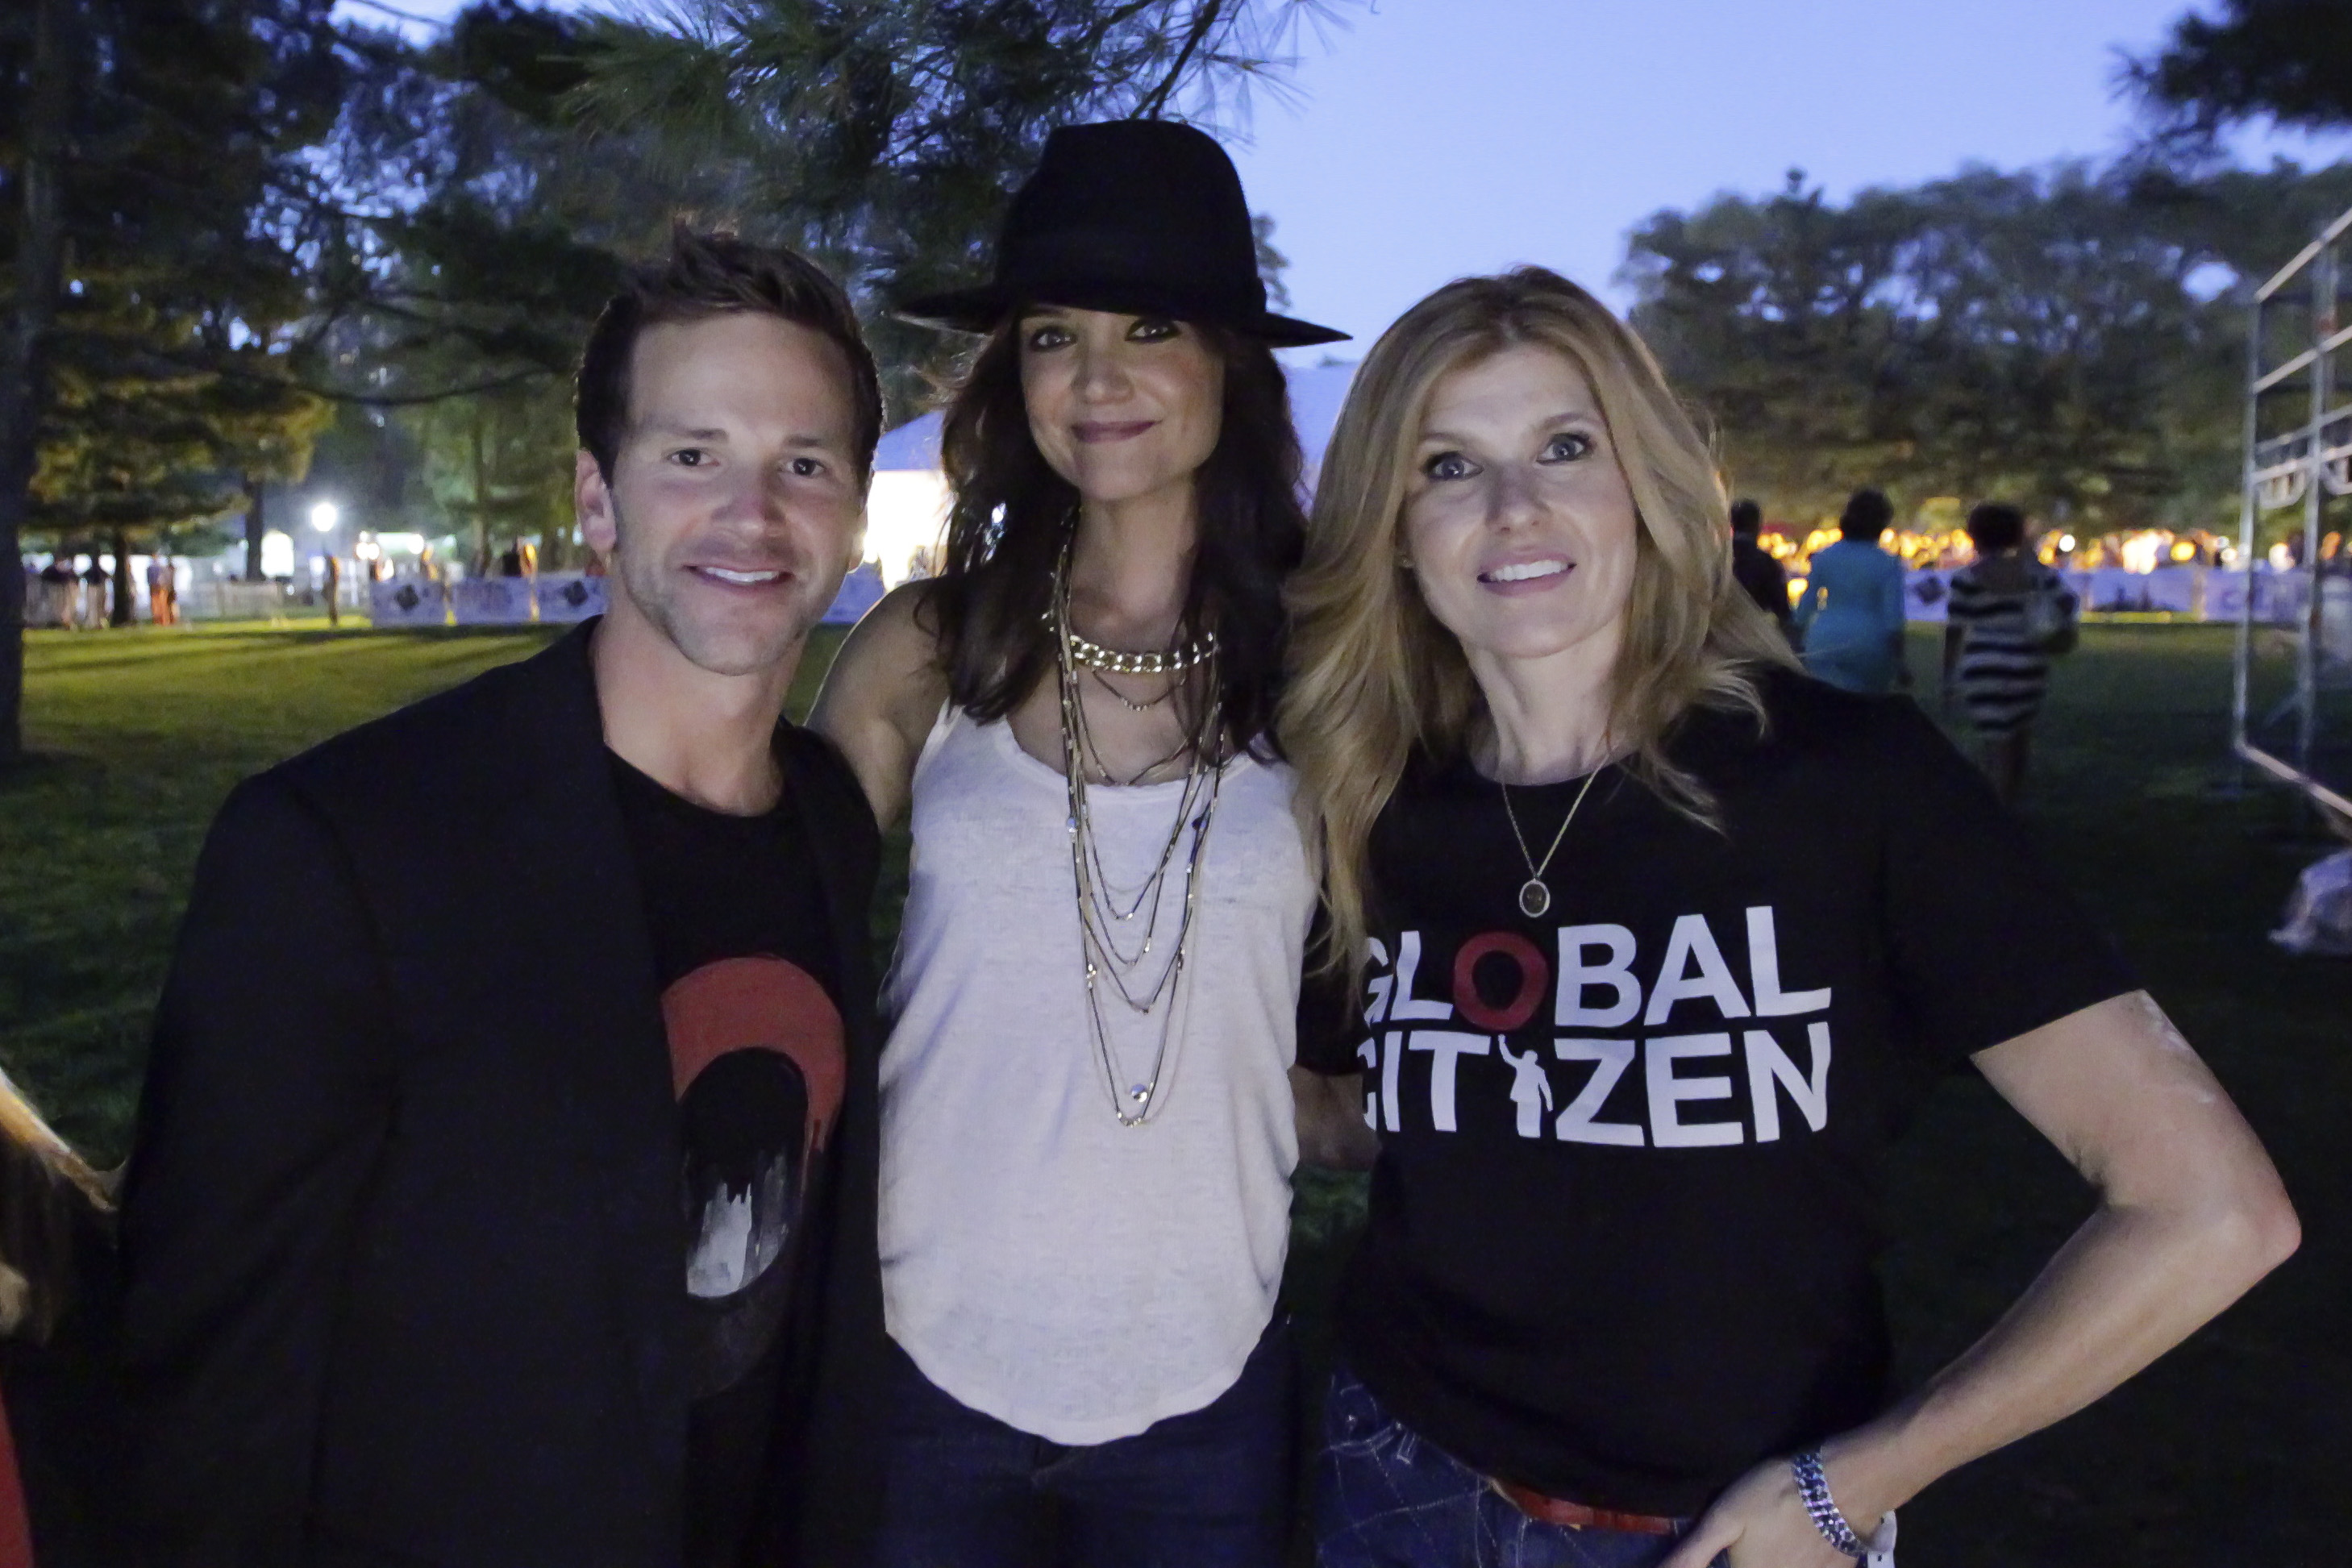 Former Illinois Rep. Aaron Schock with actress Katie Holmes at the Global Citizen Festival